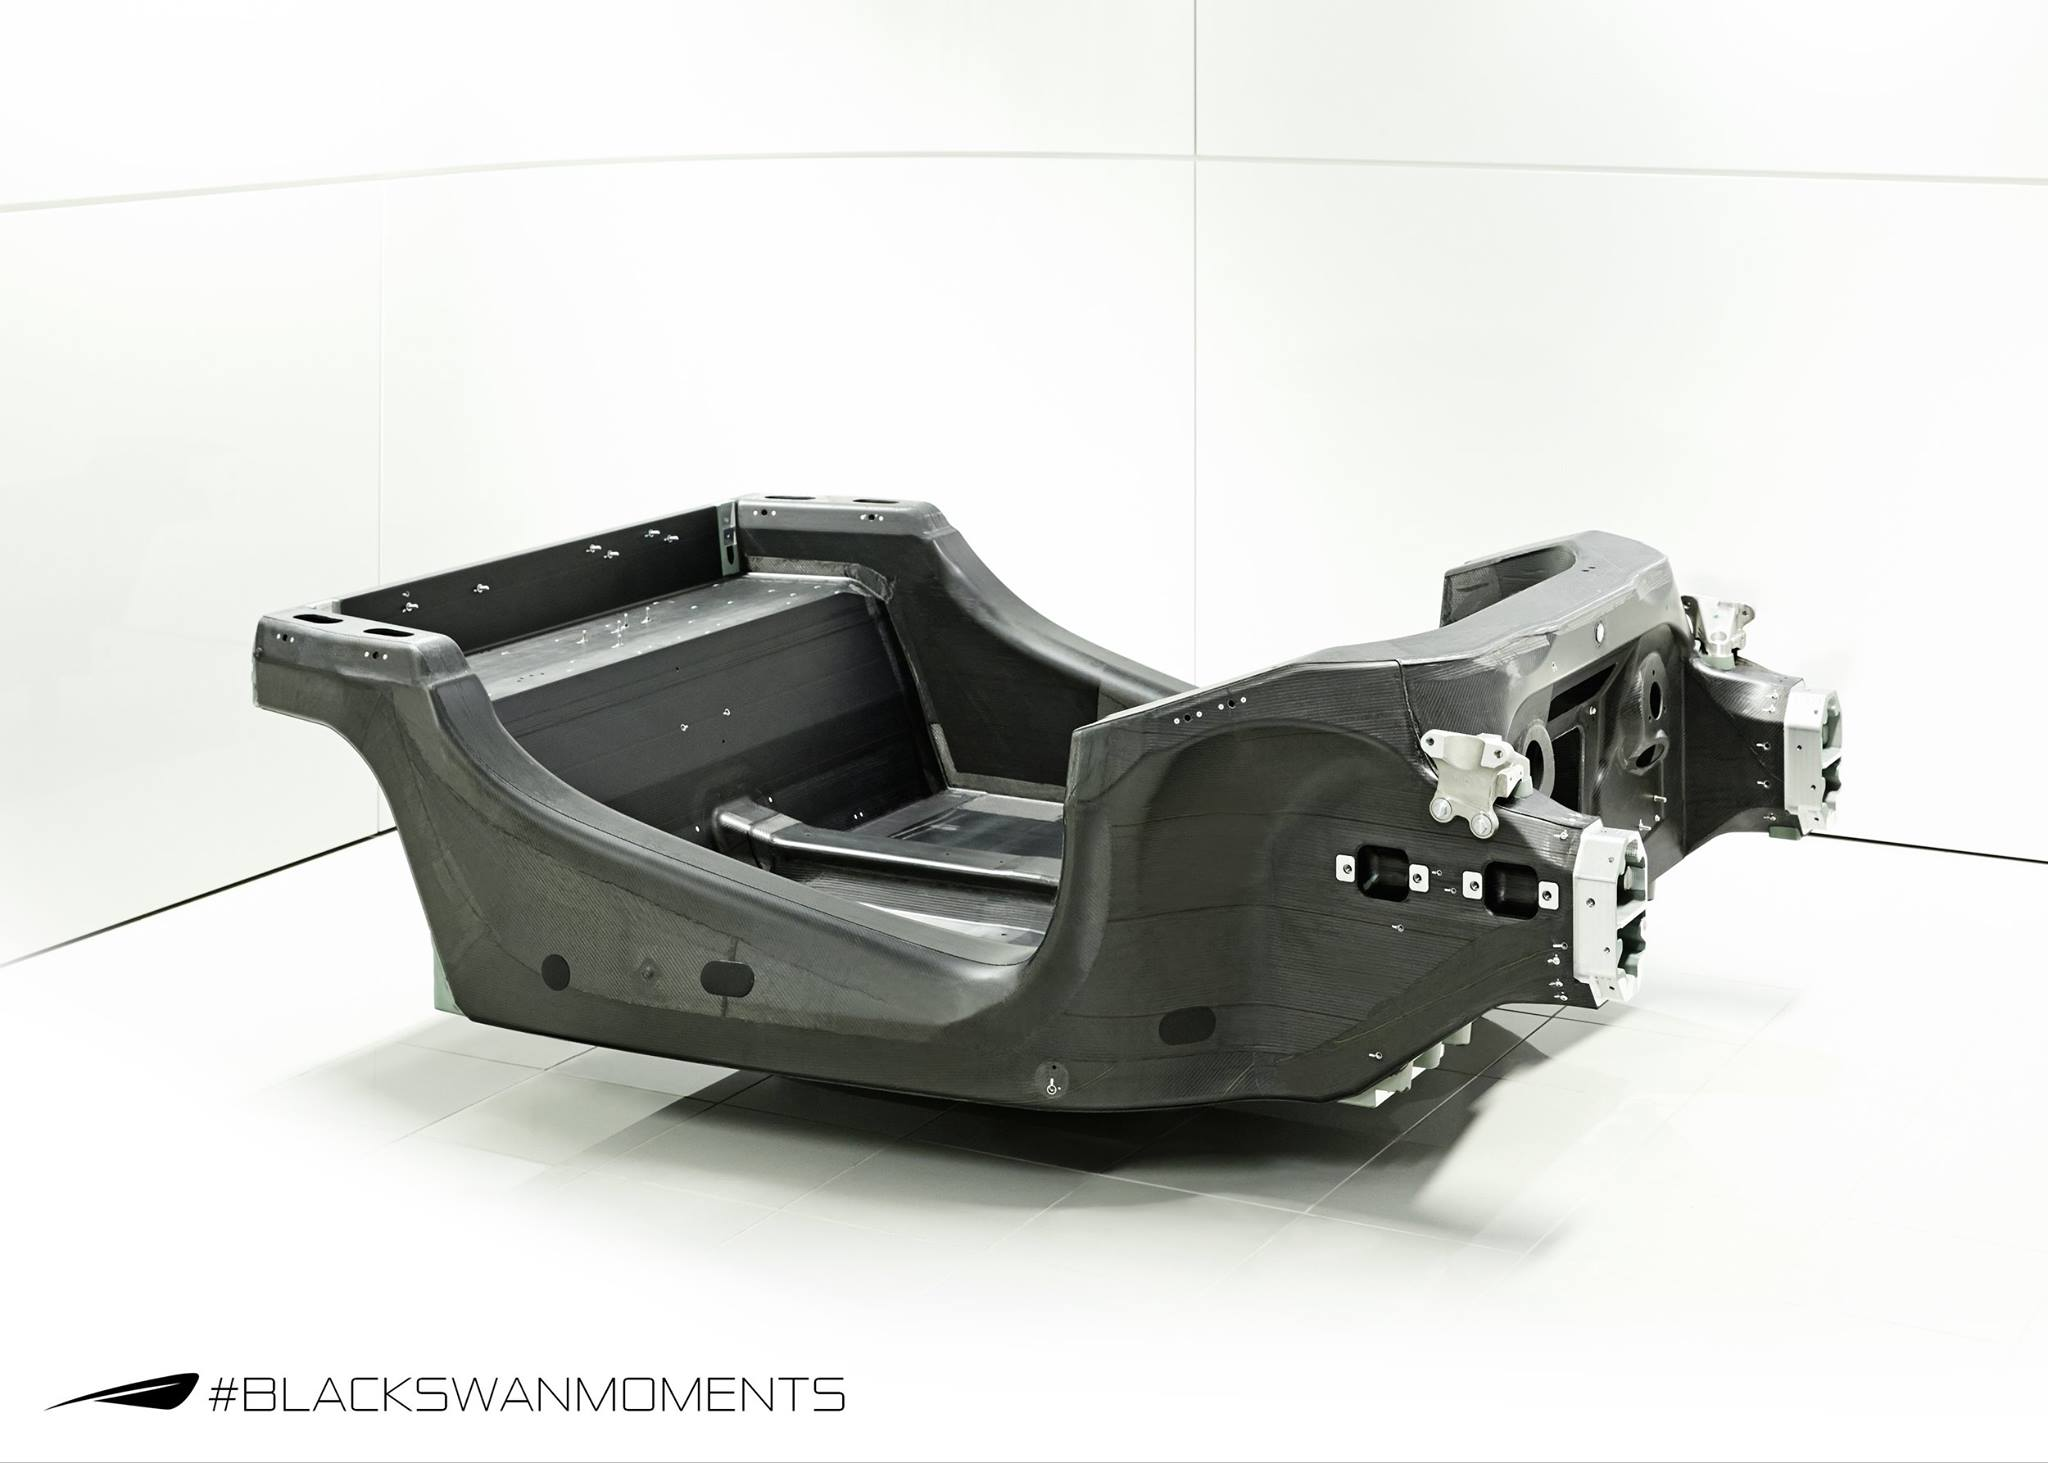 Mclaren Reveals Sports Series Carbon Fiber Monocoque Tub